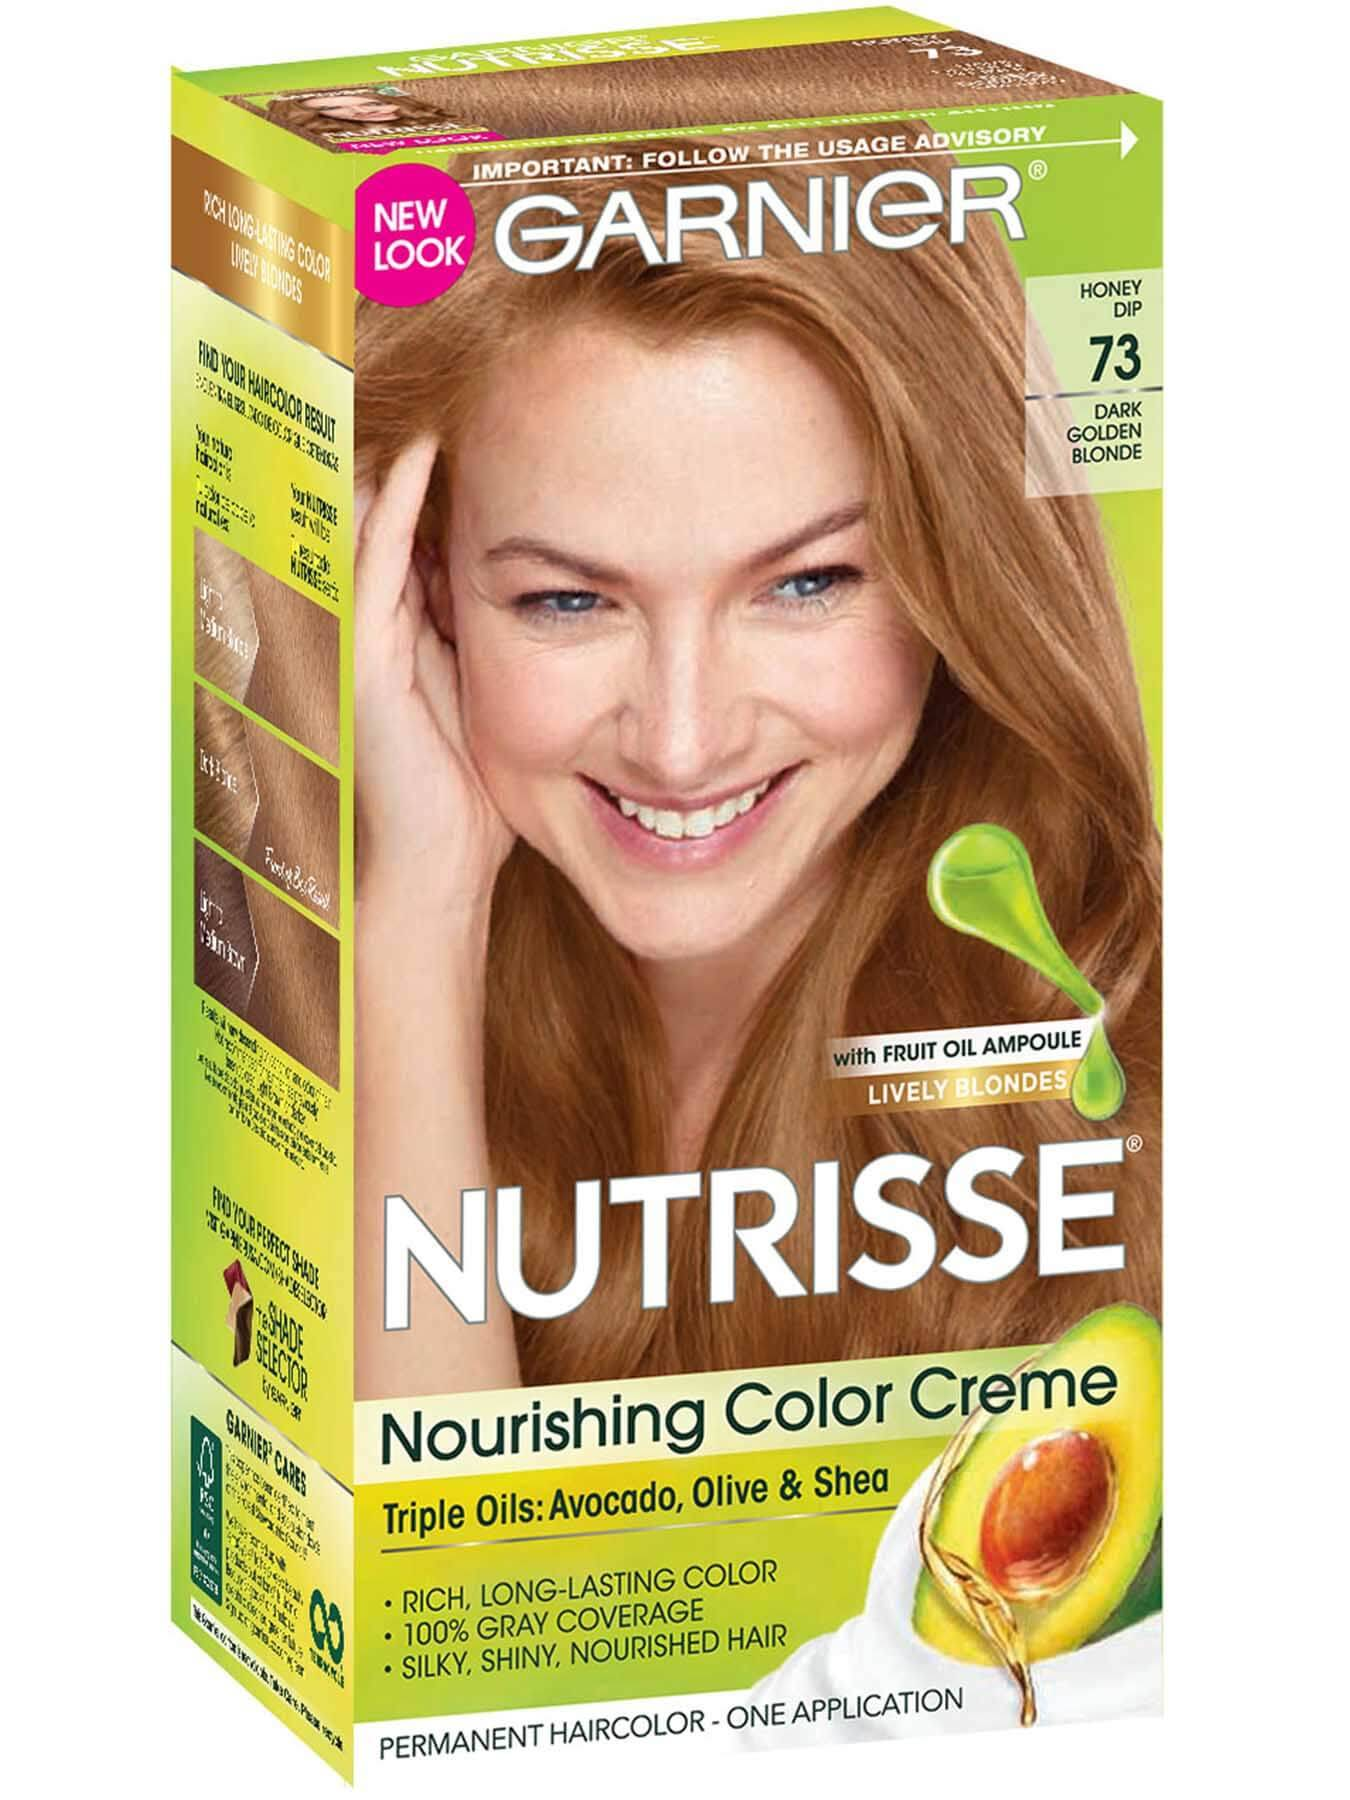 Nutrisse Nourishing Color Creme Dark Golden Blonde 73 Garnier